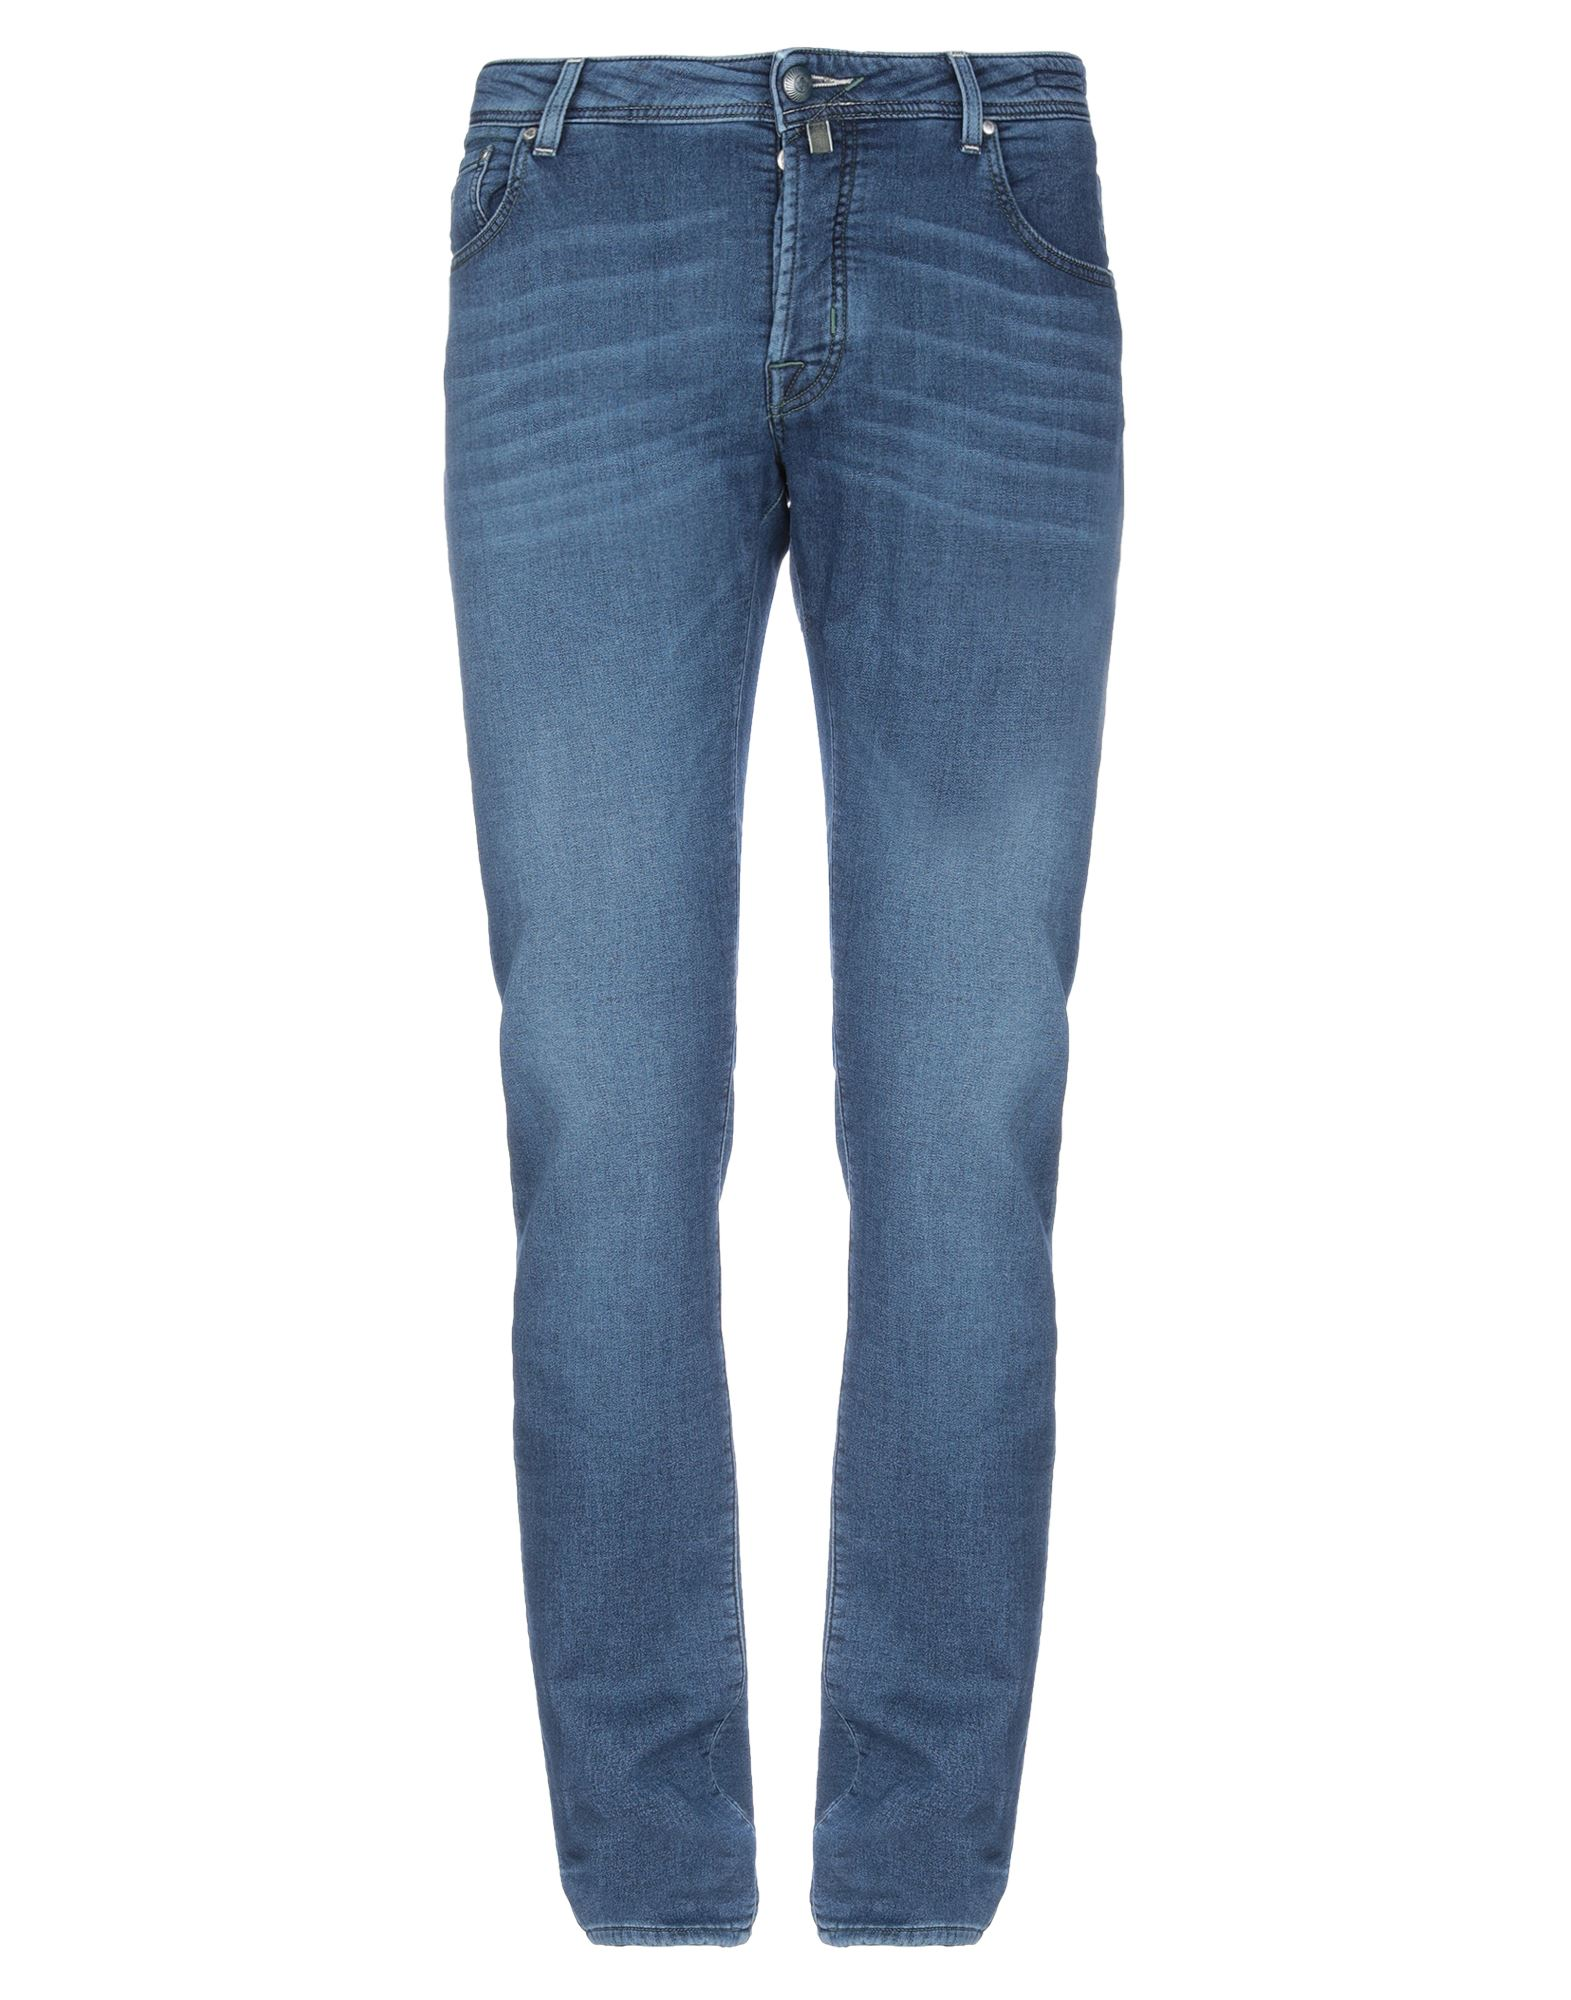 JACOB COHЁN Denim pants - Item 42829389